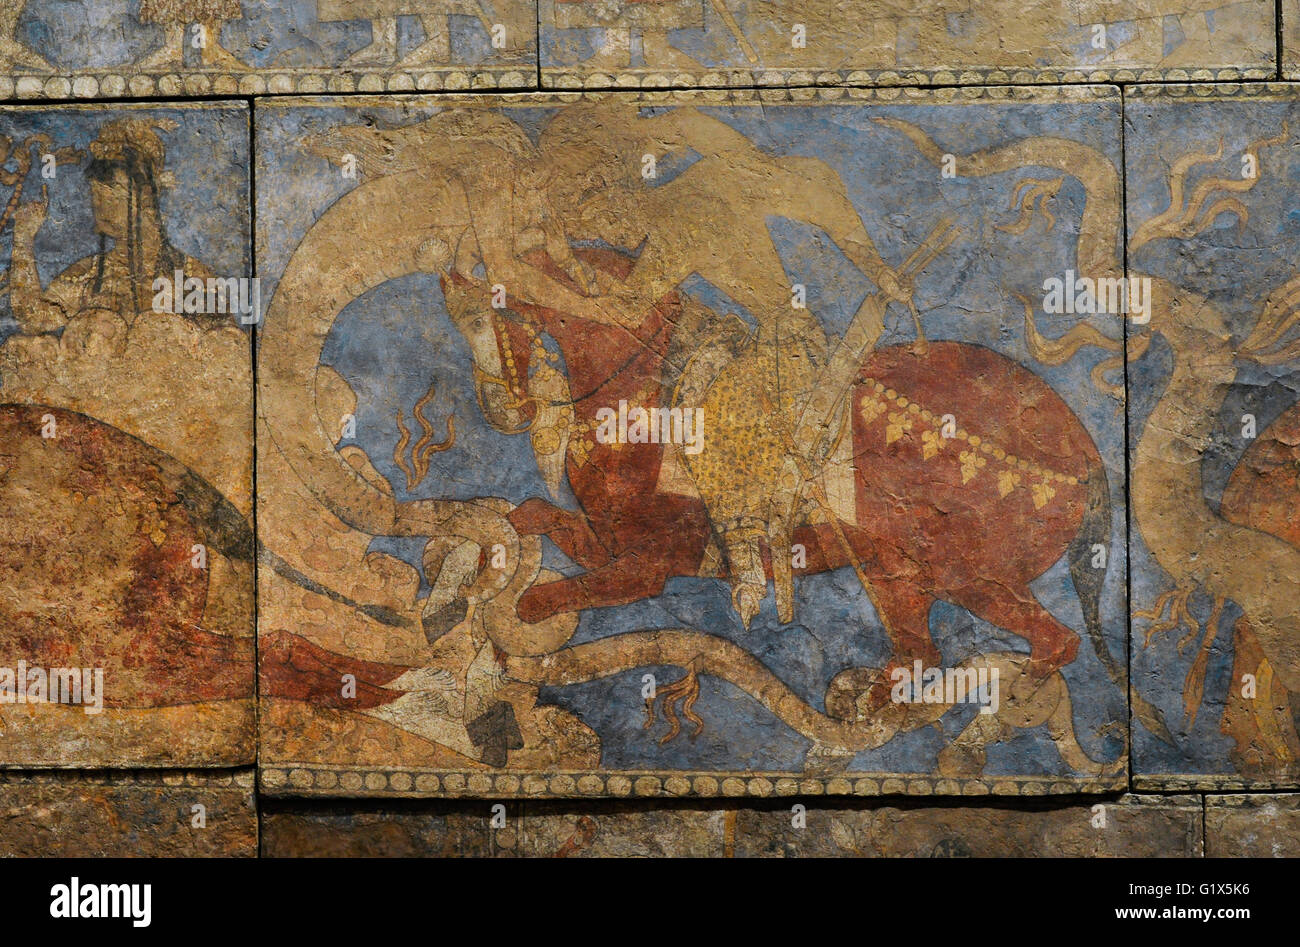 sogdia pre islamic central asia mural painting pre islamic central asia mural painting